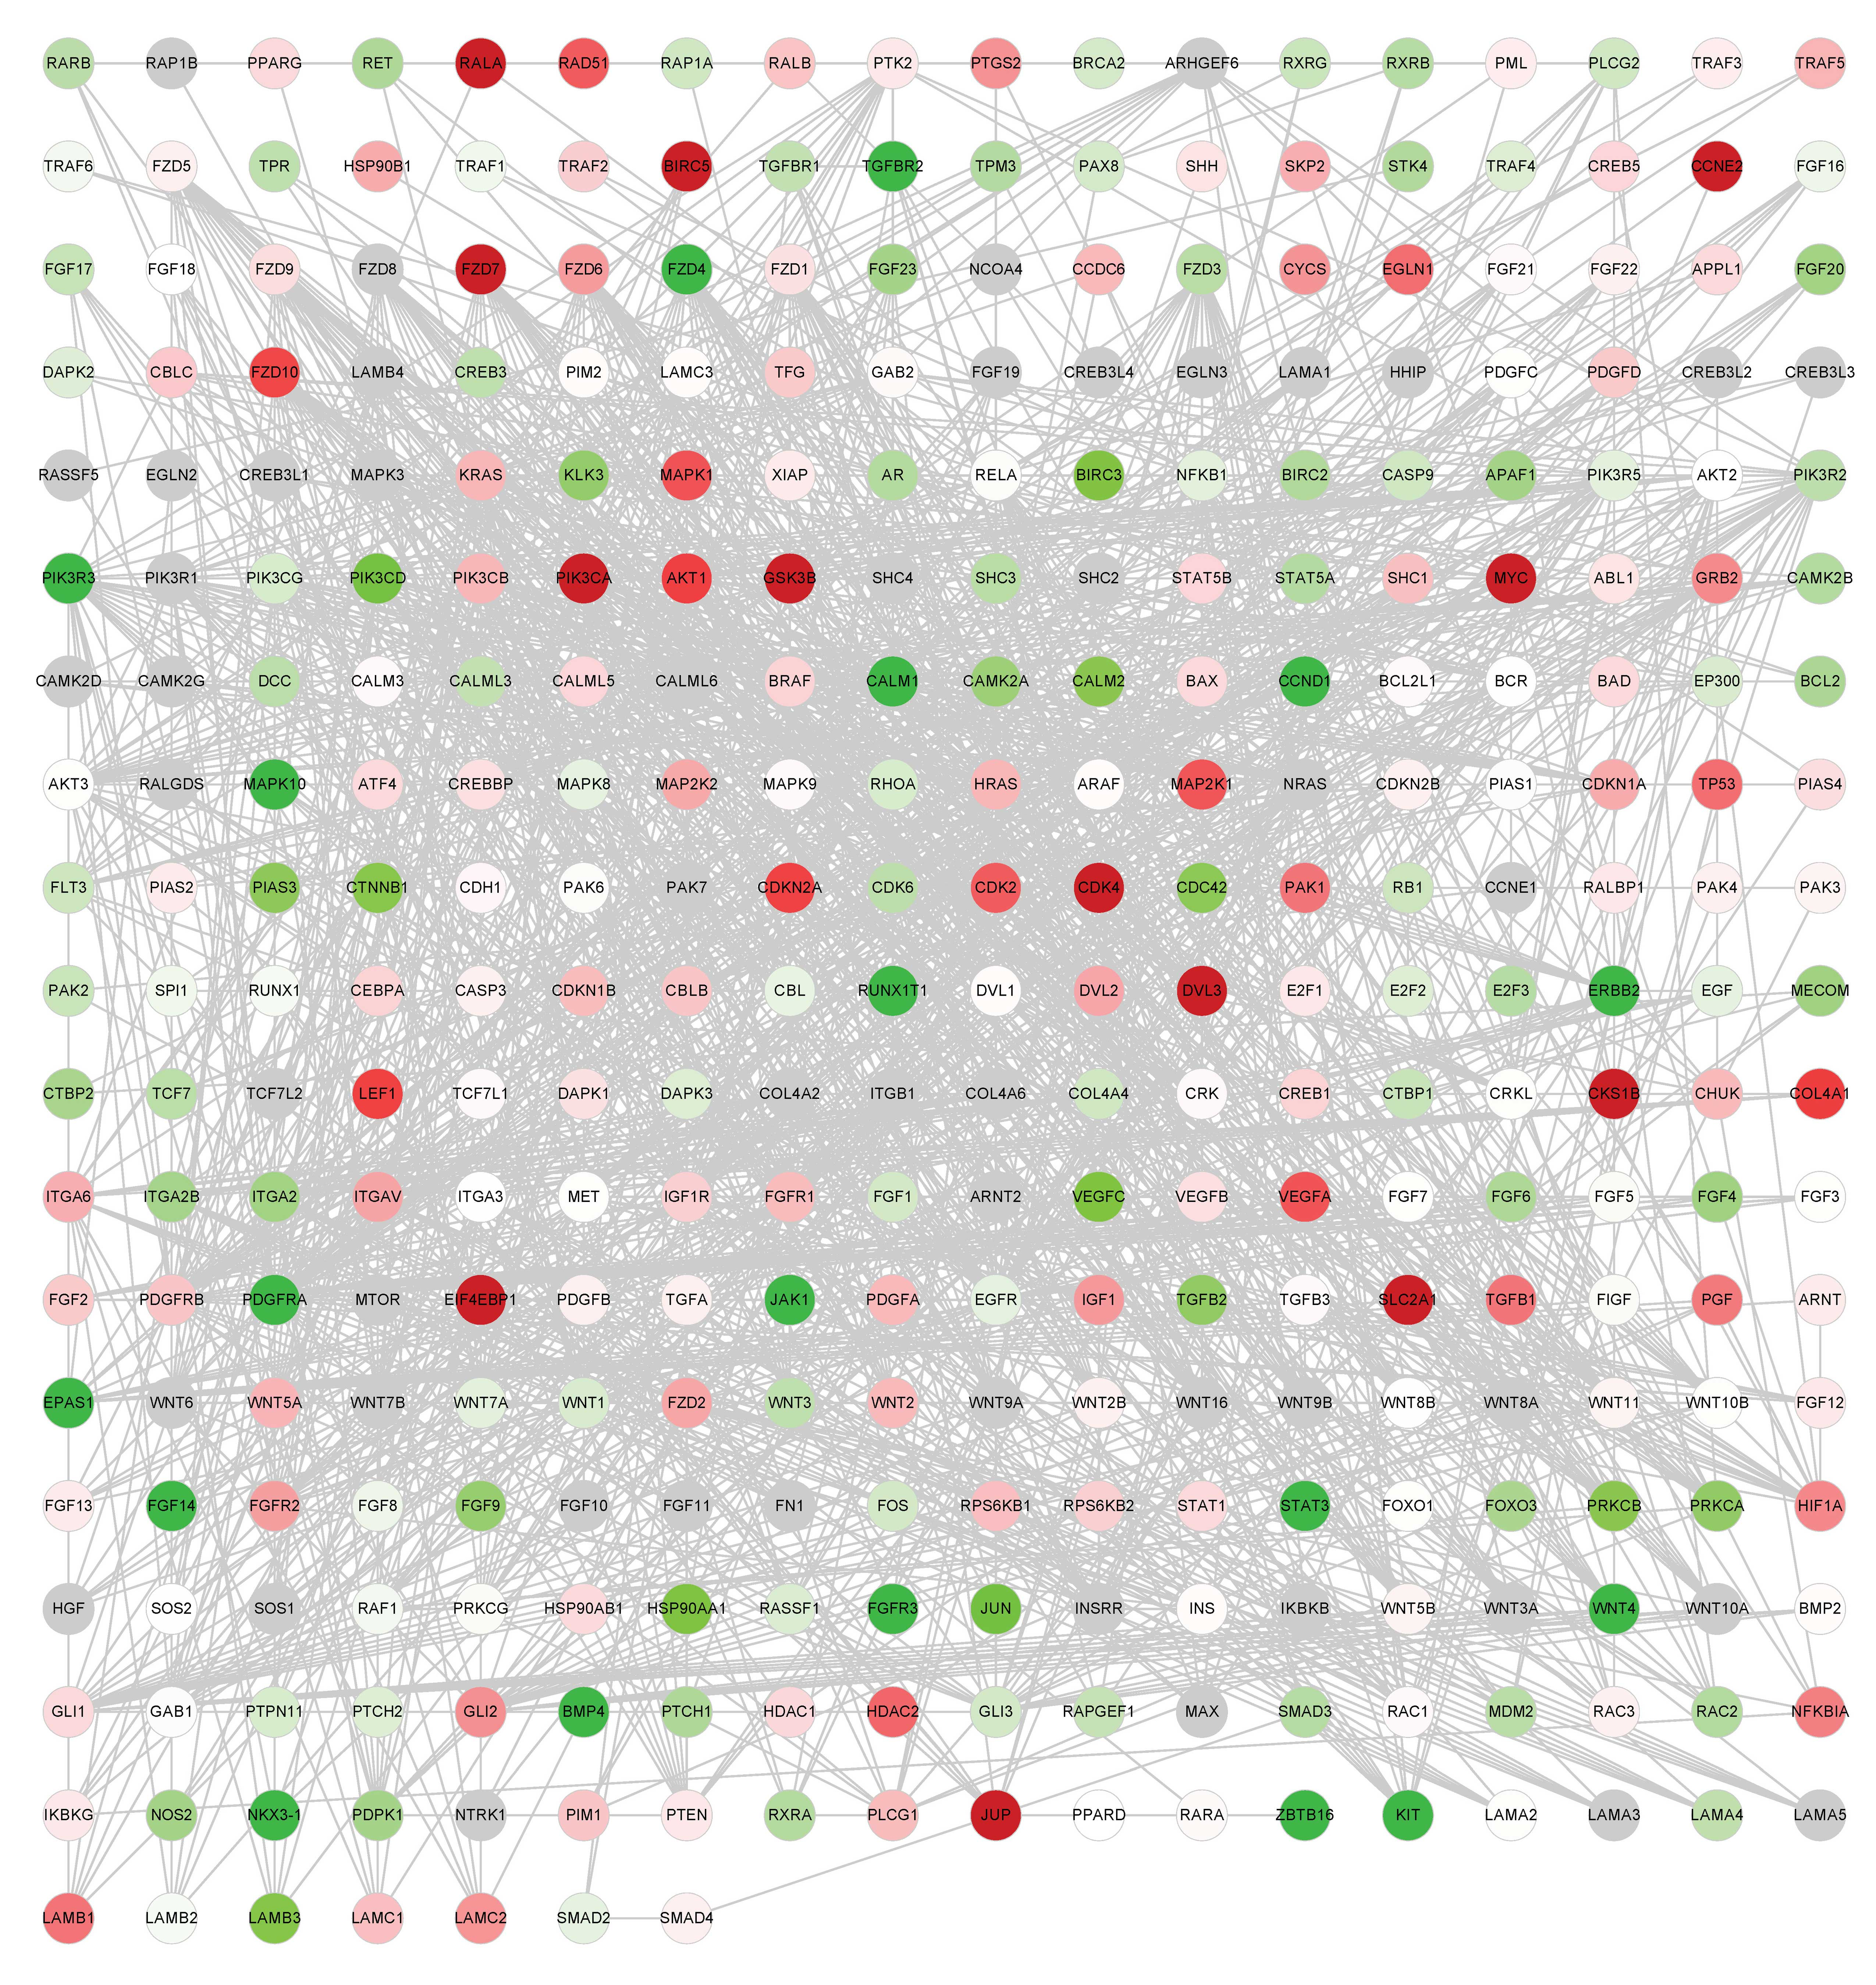 Identification Of Differentially Expressed Genes Between Lung